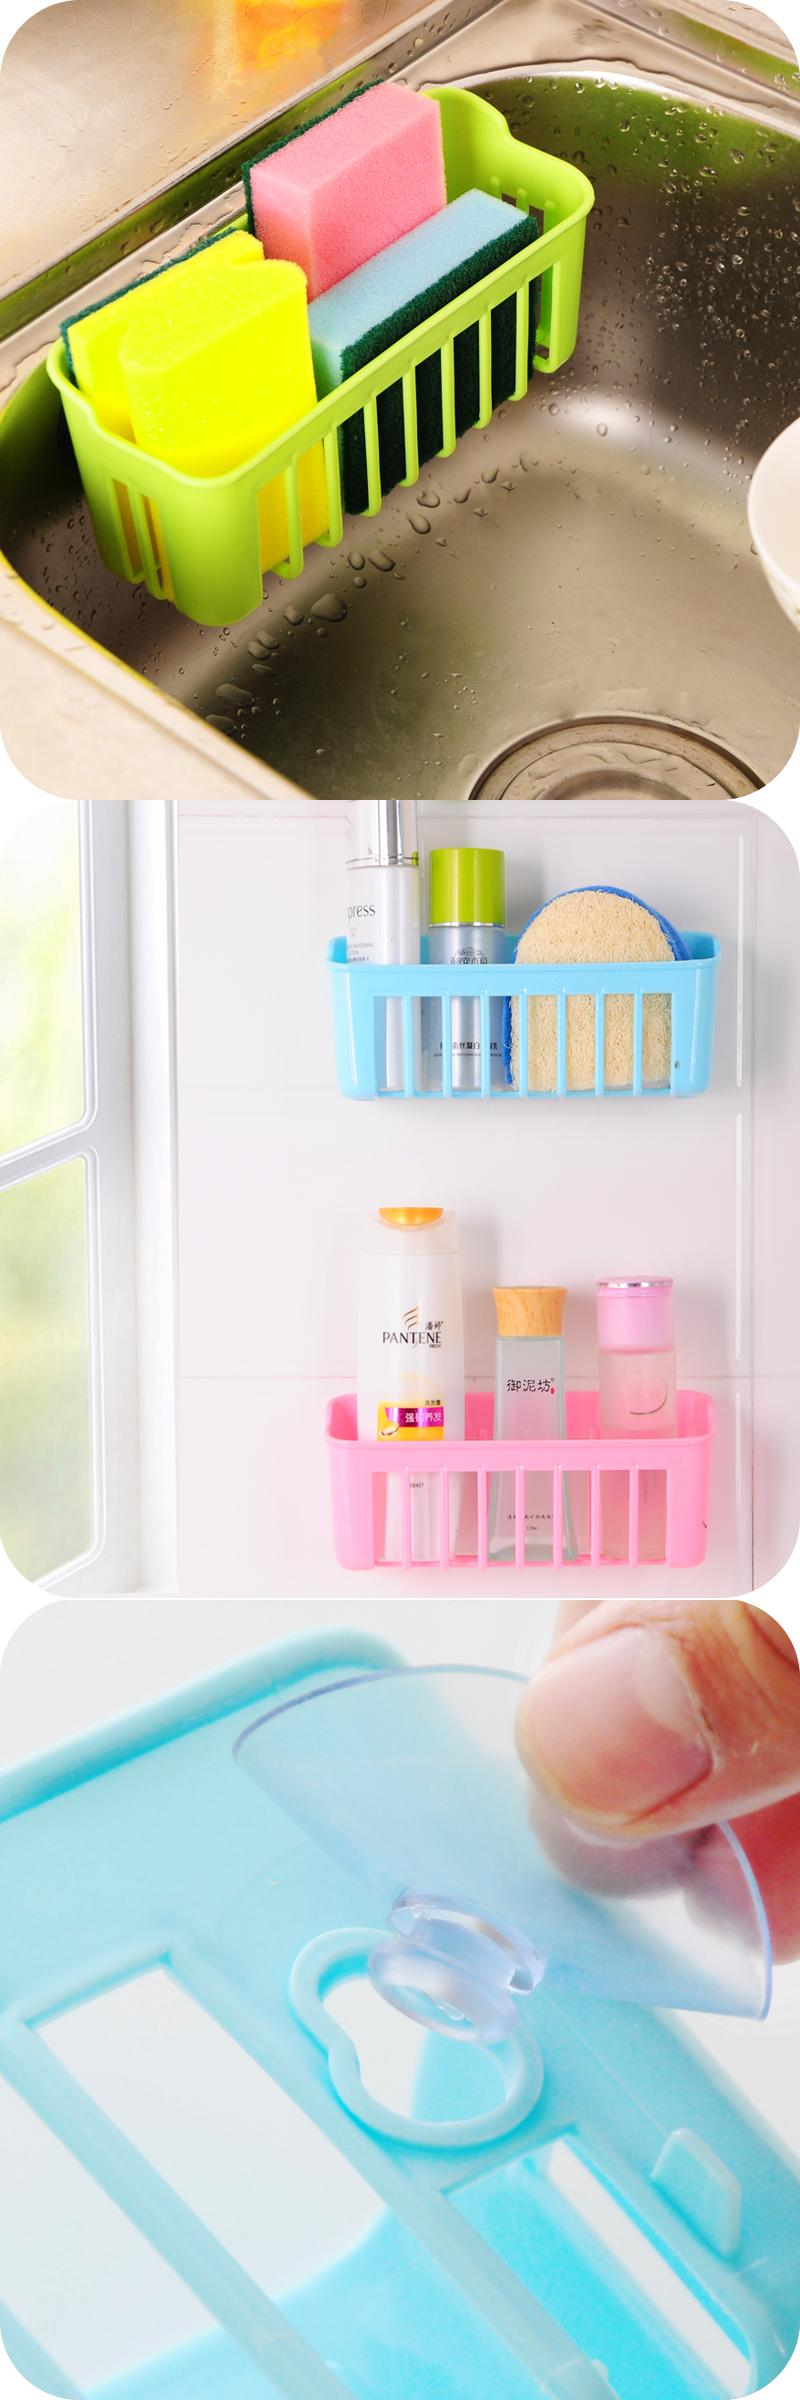 Plastic removable bath shelf wall mounted cosmetic holder storage -  Visit To Buy New Plastic Storage Basket With 2 Sucker Kitchen Tools Organizer Bathroom